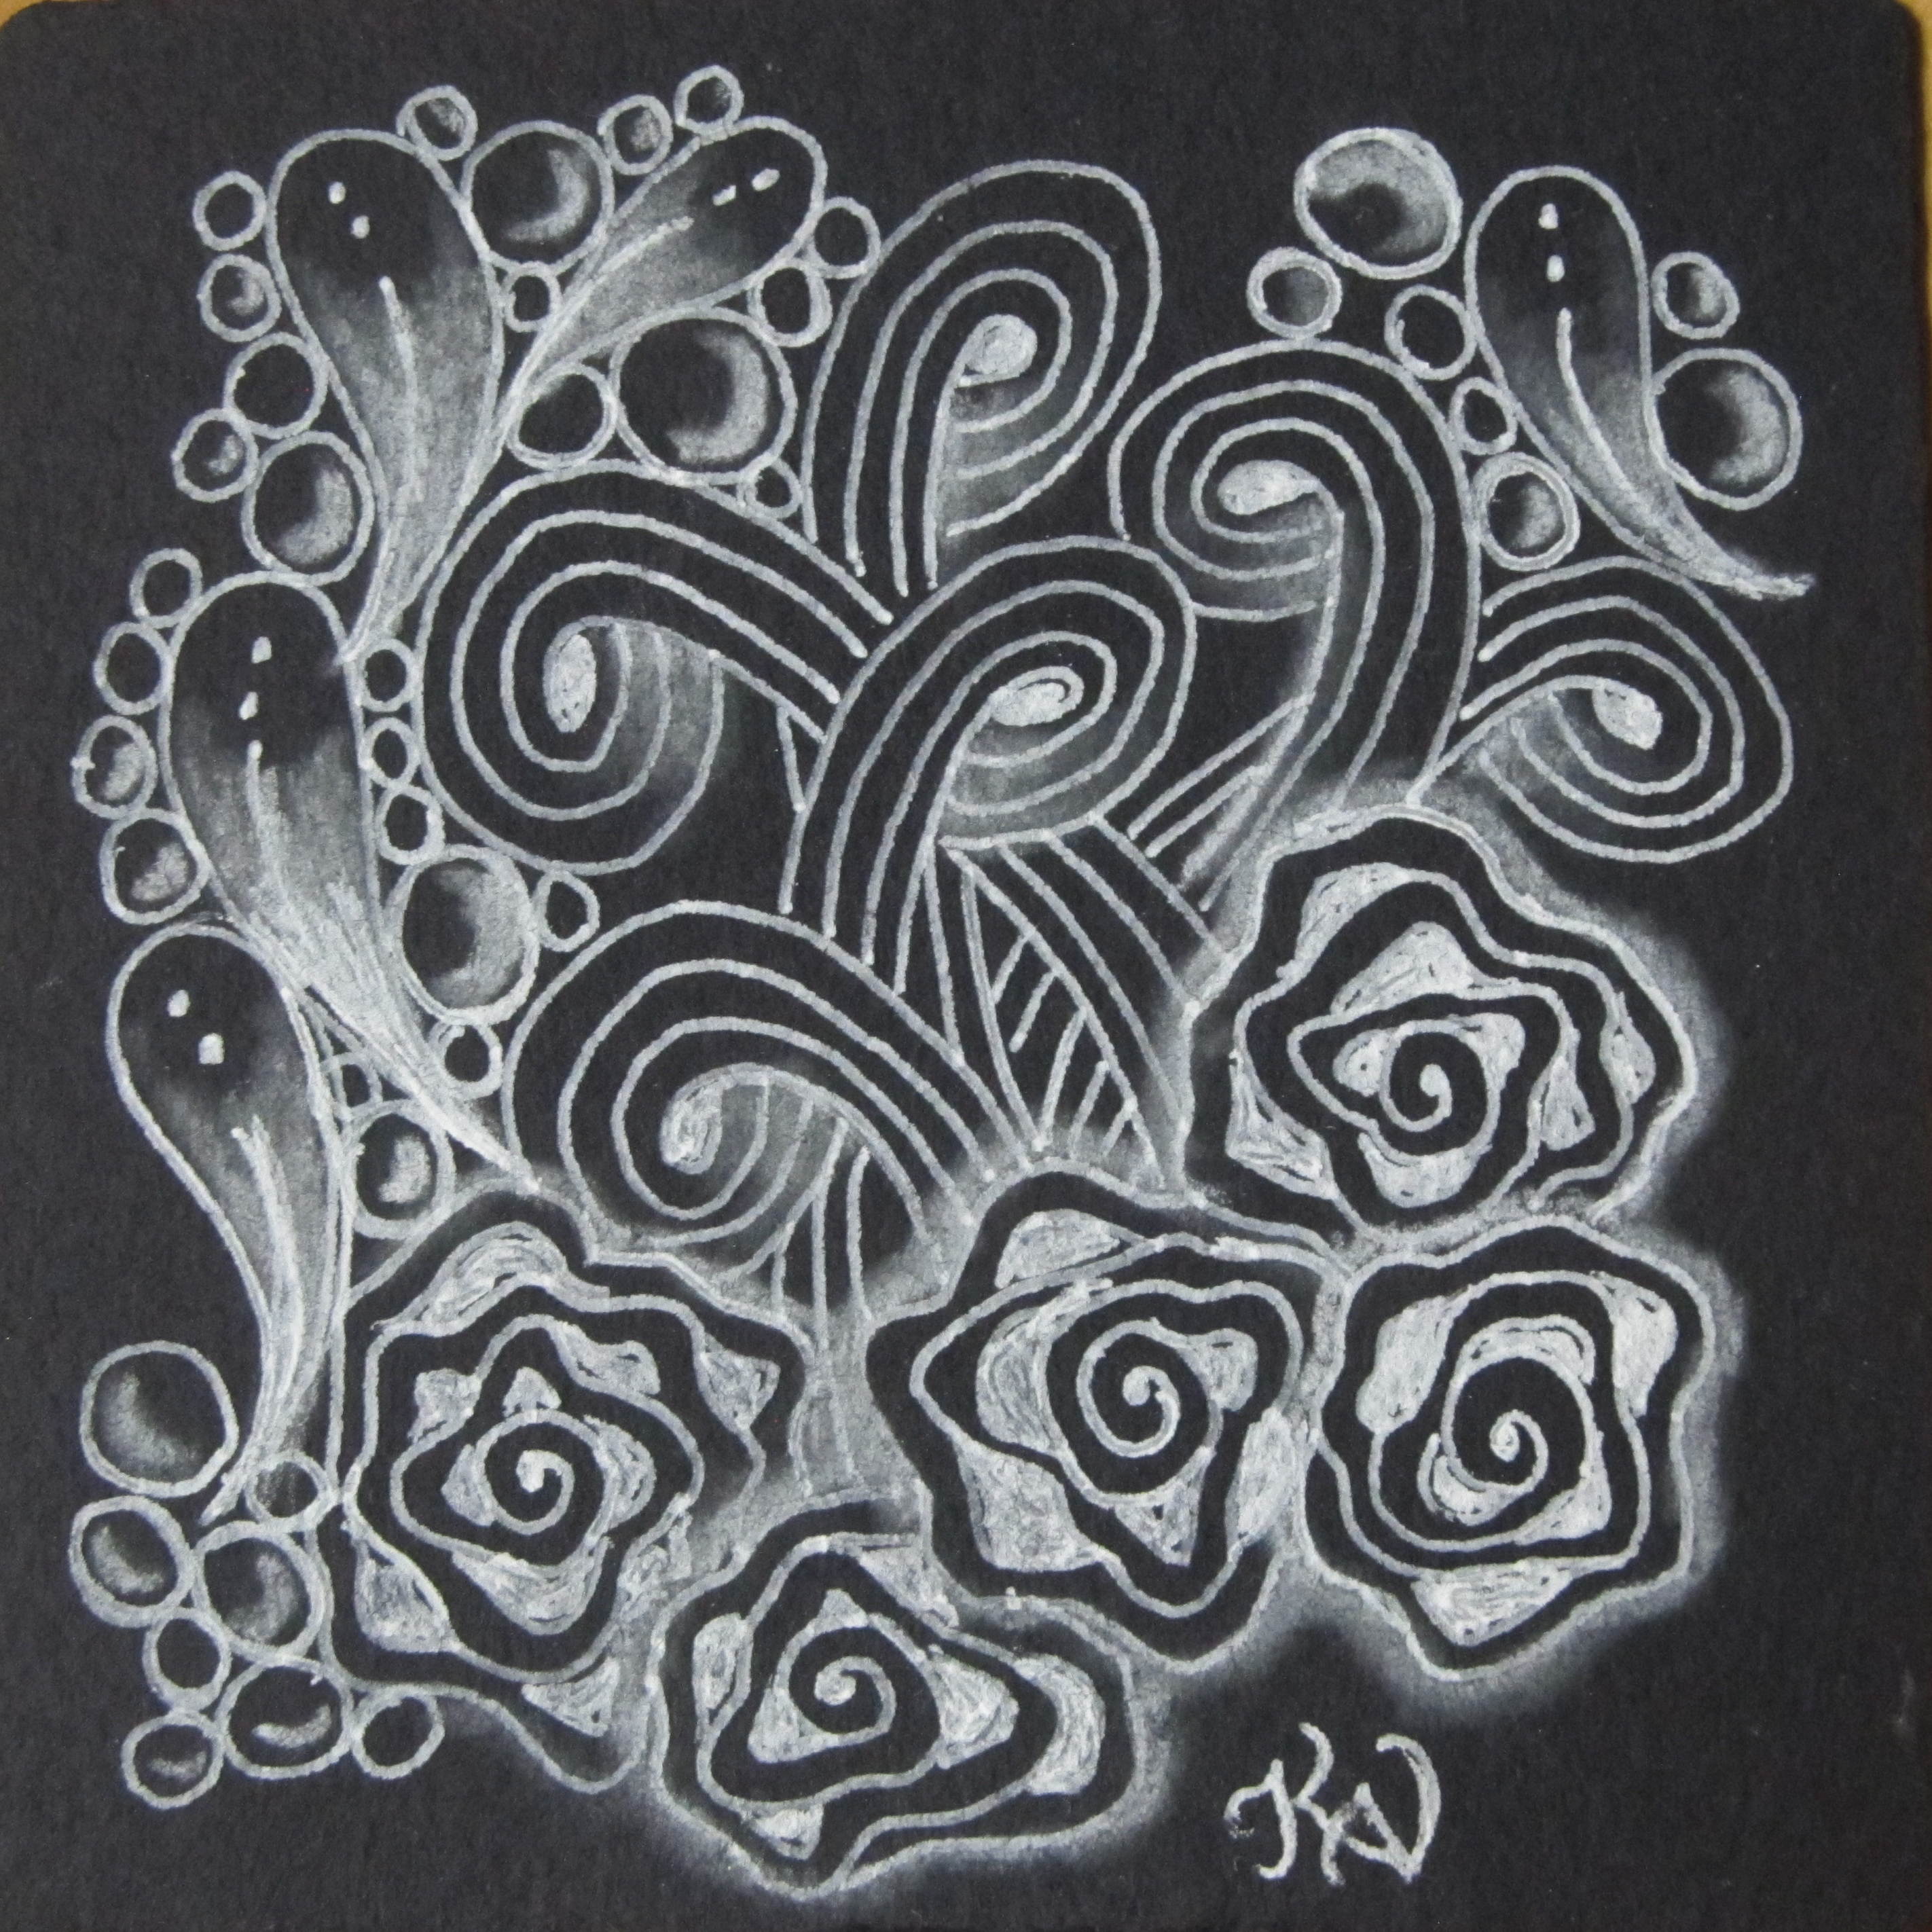 Black tile with white gel pen & char